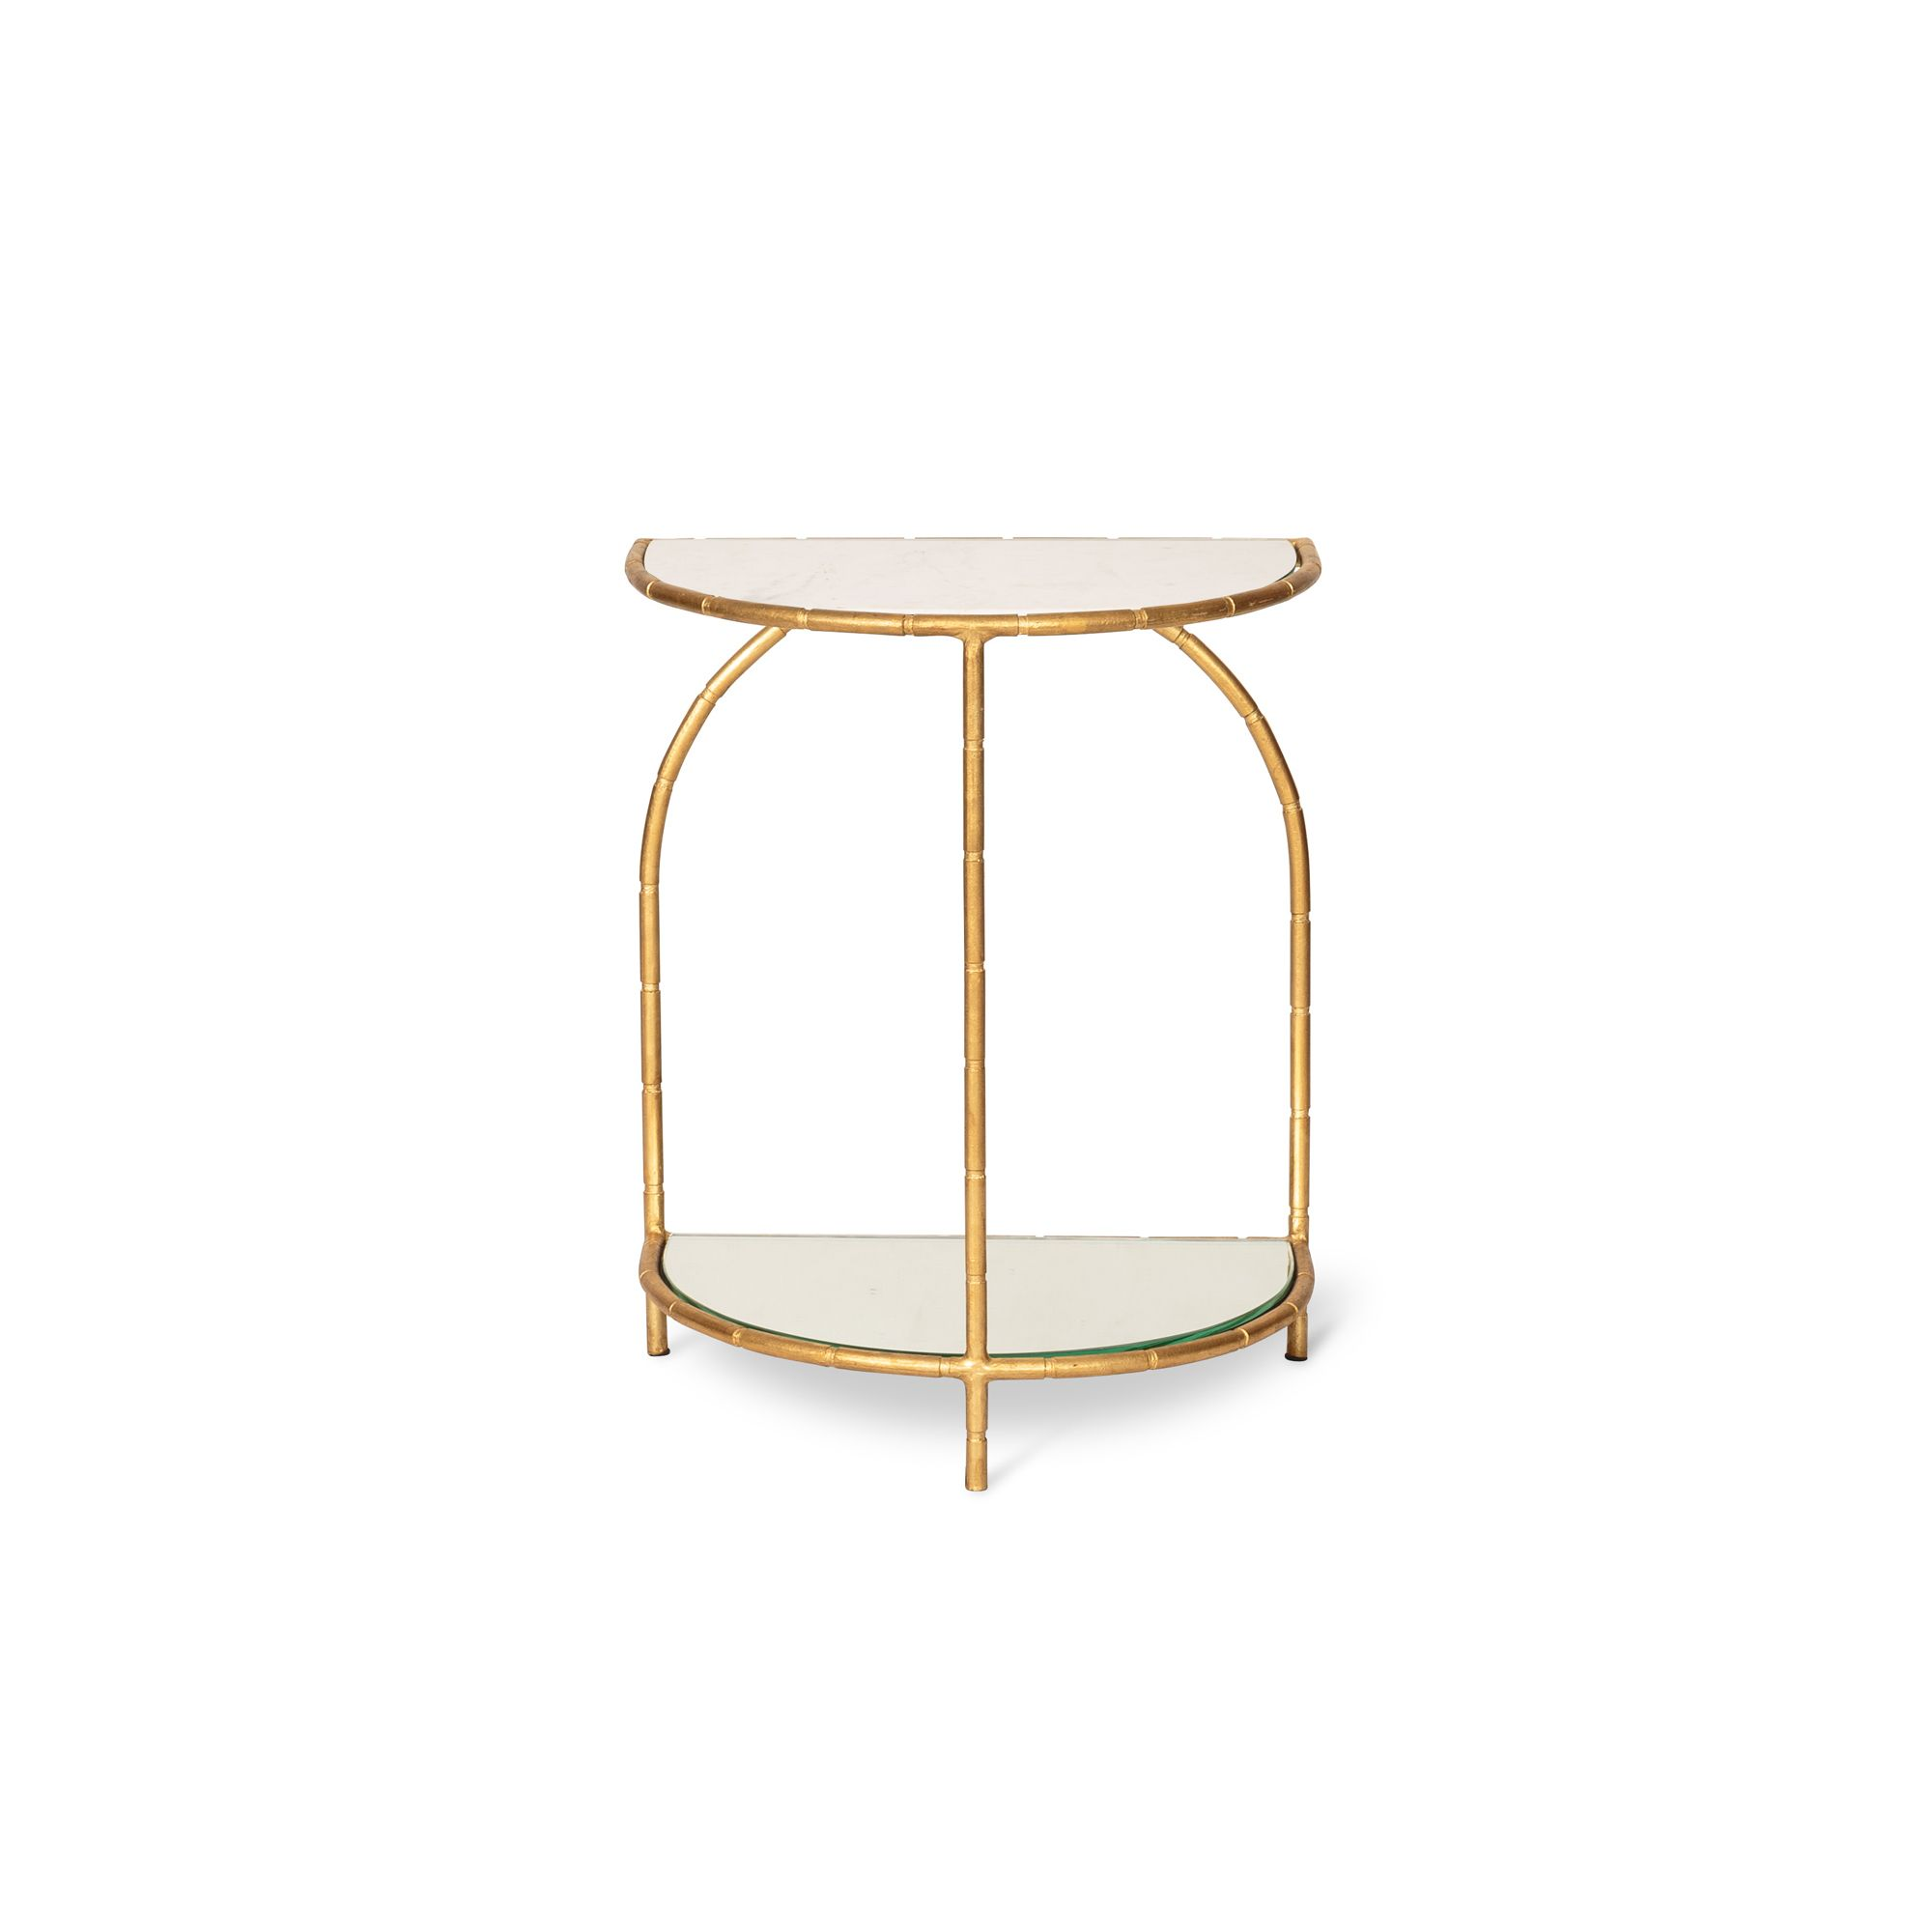 Buy The White Luxe Half Moon Bamboo Side Table At Oliver Bonas. We Deliver  Furniture Throughout The UK Within 5 12 Working Days From £35.